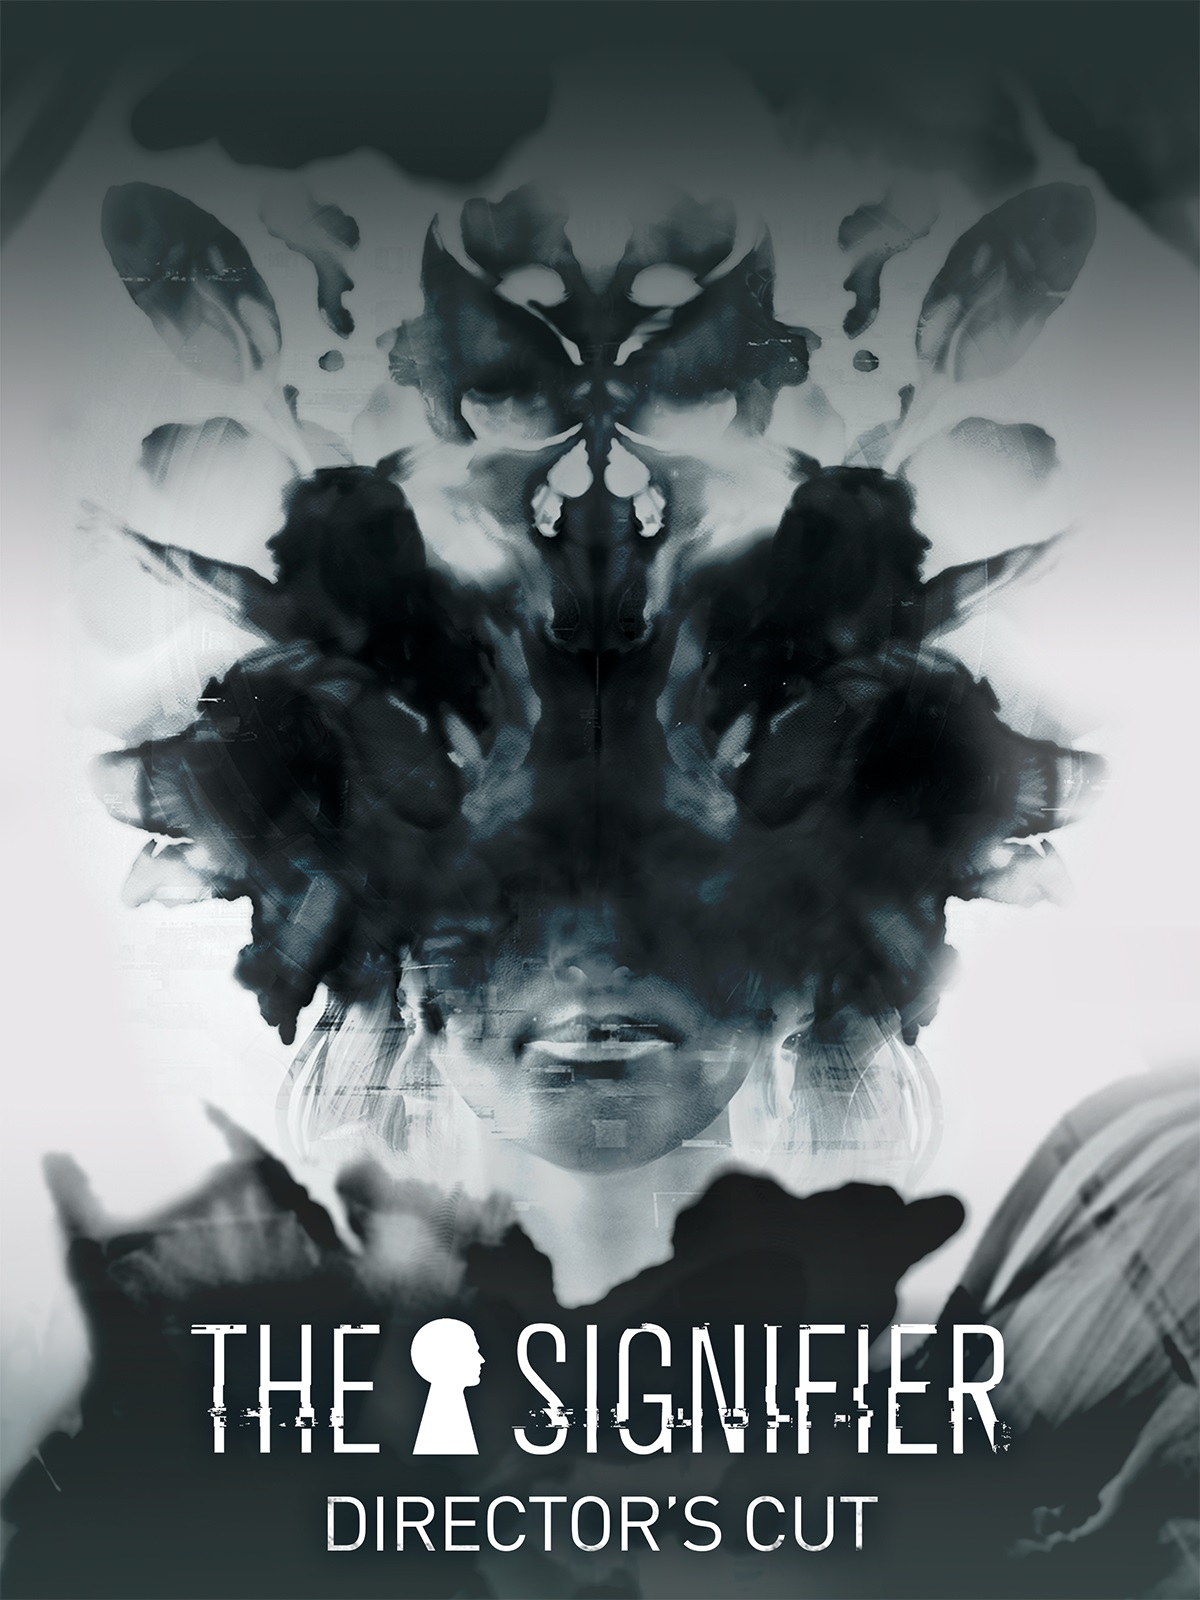 Baixar The Signifier Director's Cut Torrent (PC)